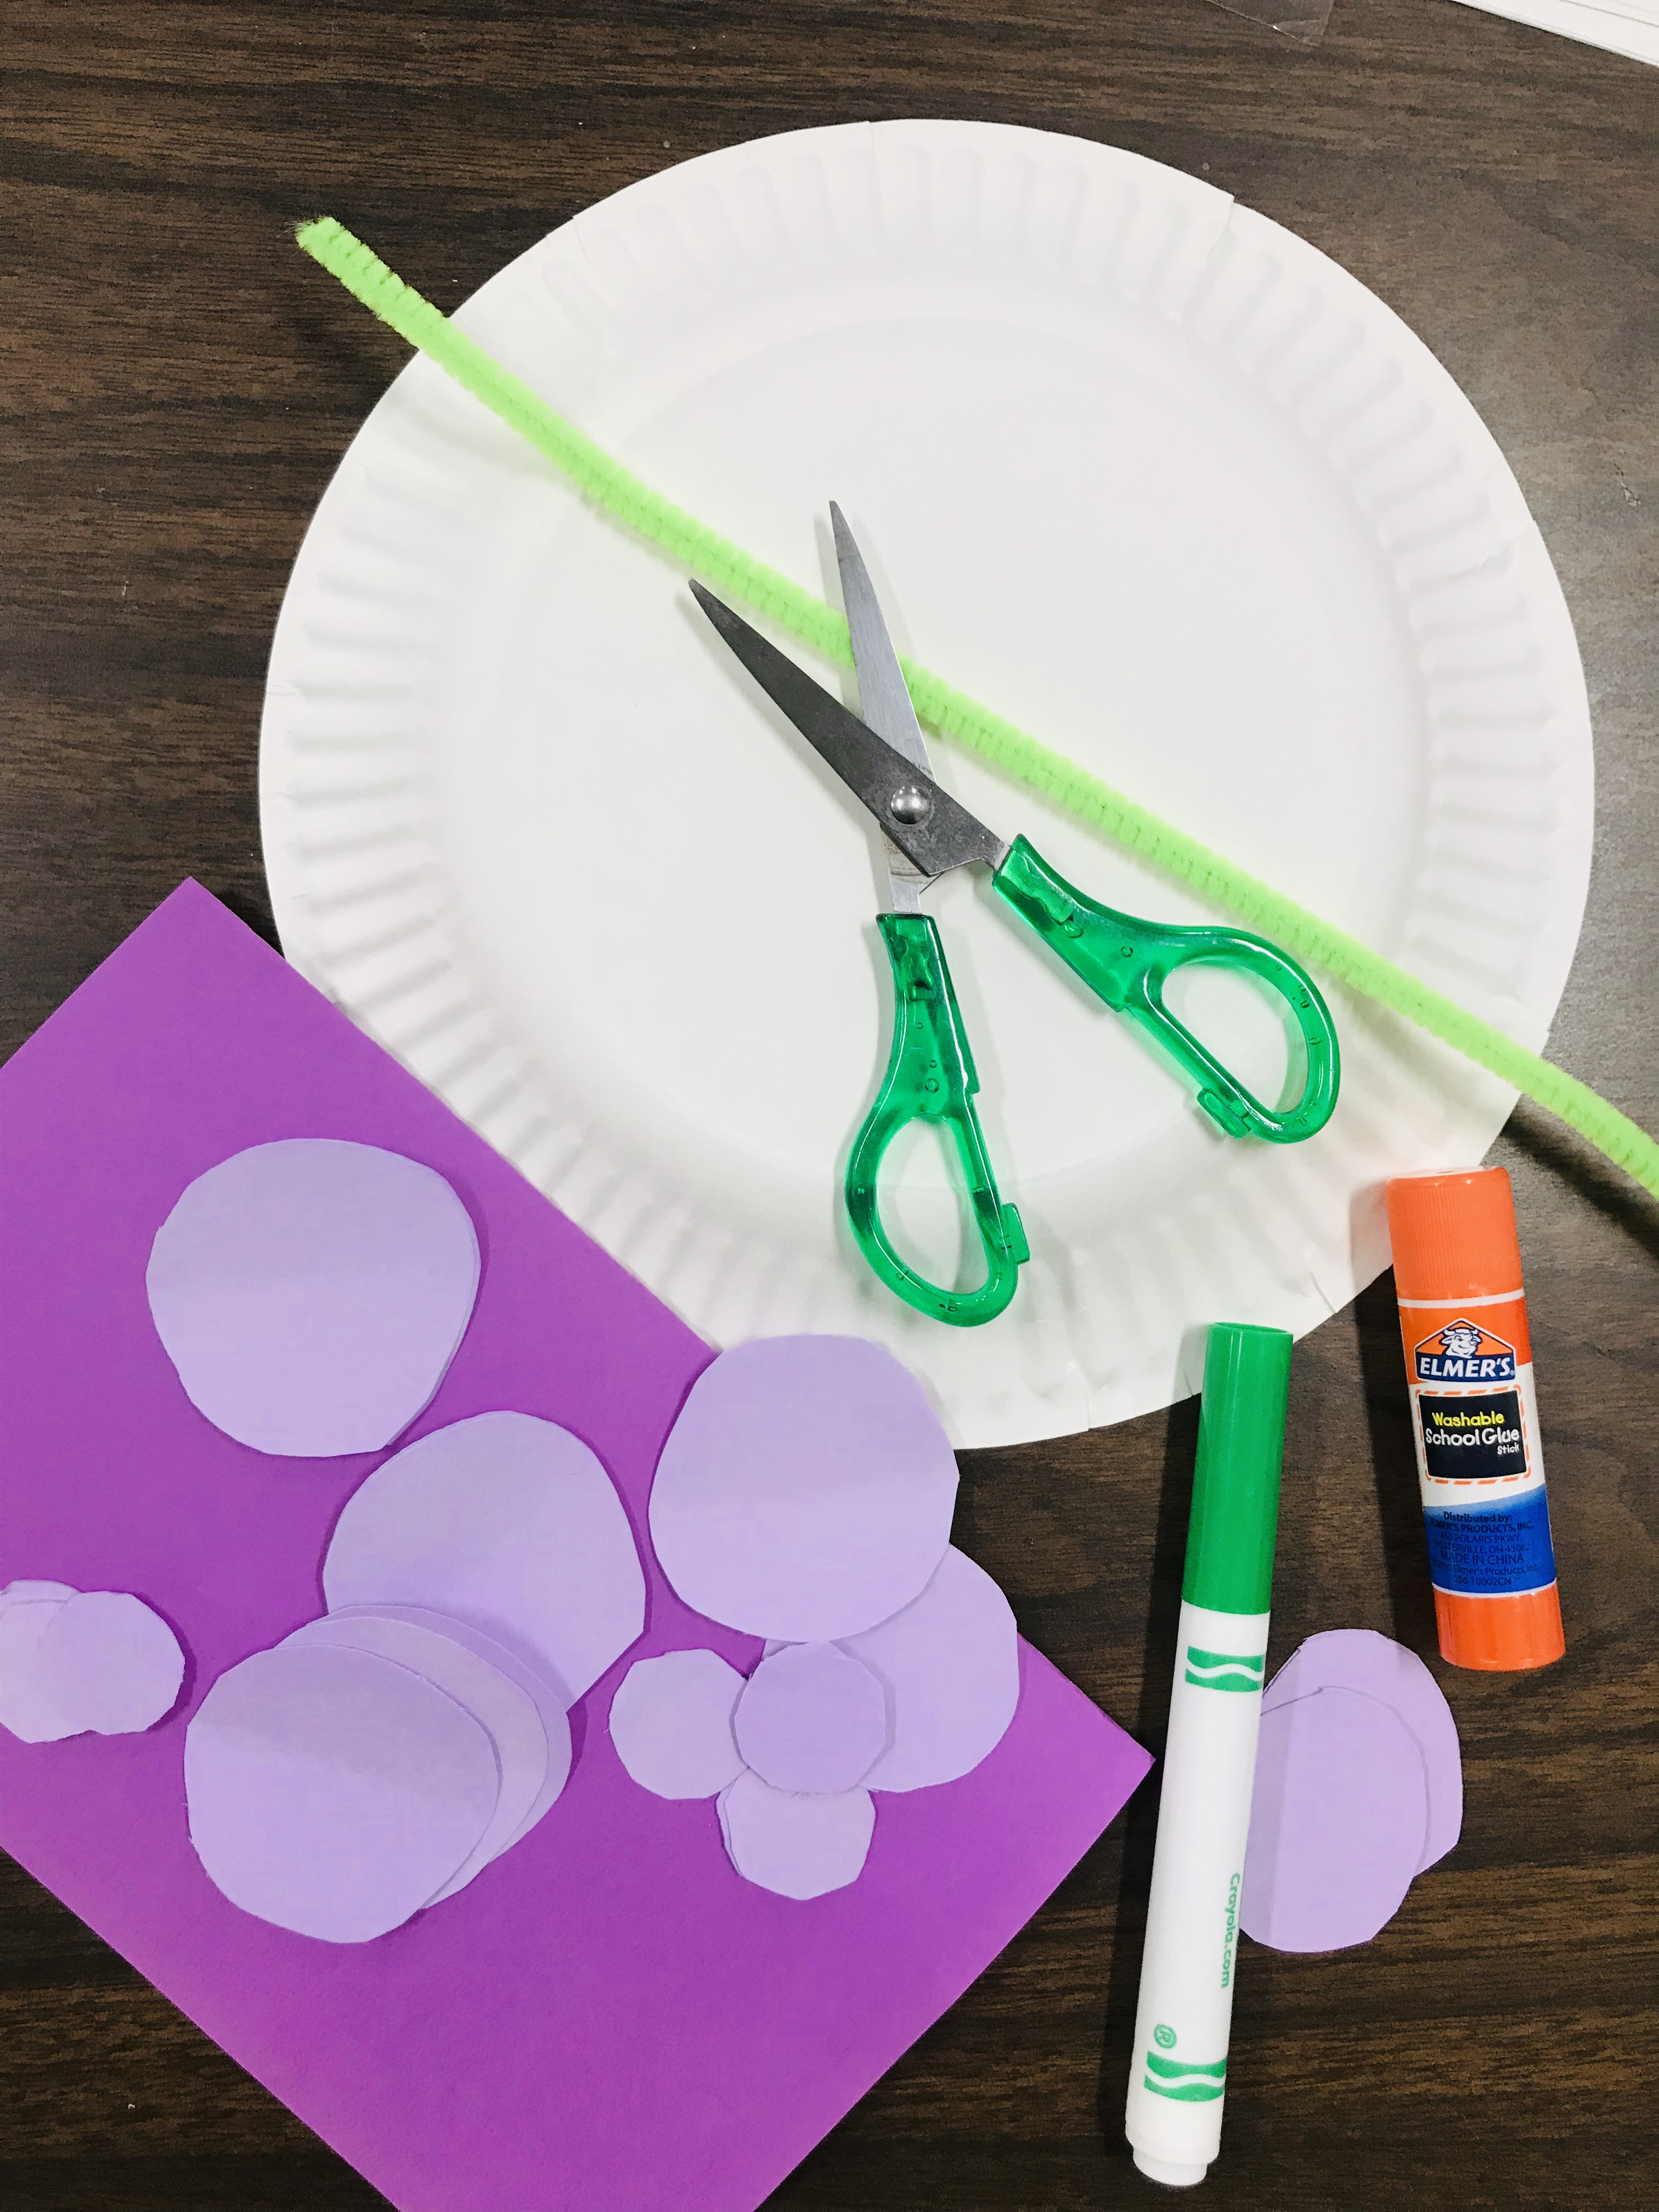 Paper plate and sheet with scissors, marker, and glue